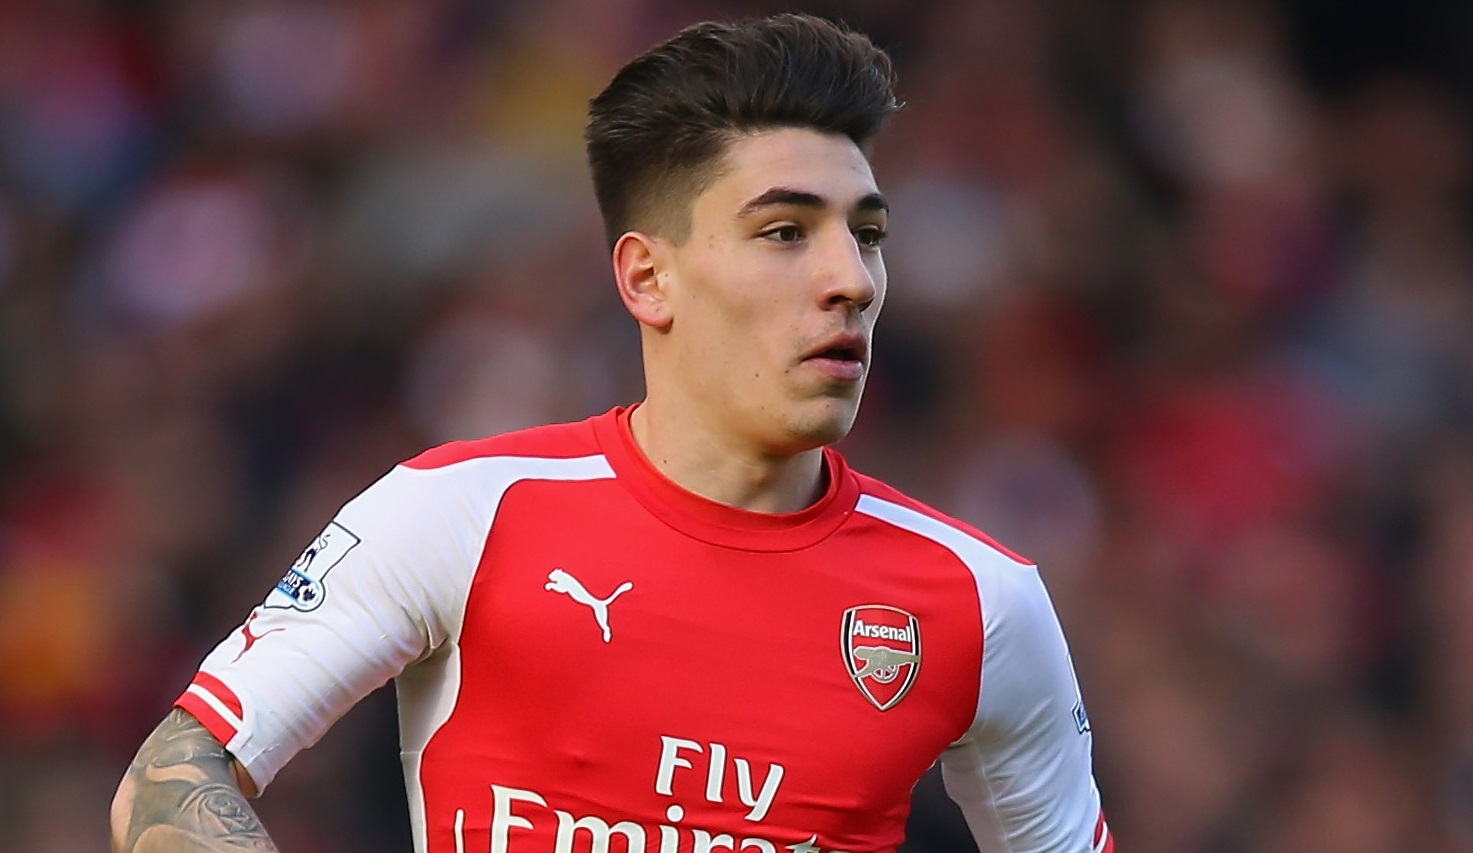 Héctor Bellerín earned a 0.28 million dollar salary, leaving the net worth at 1.14 million in 2017